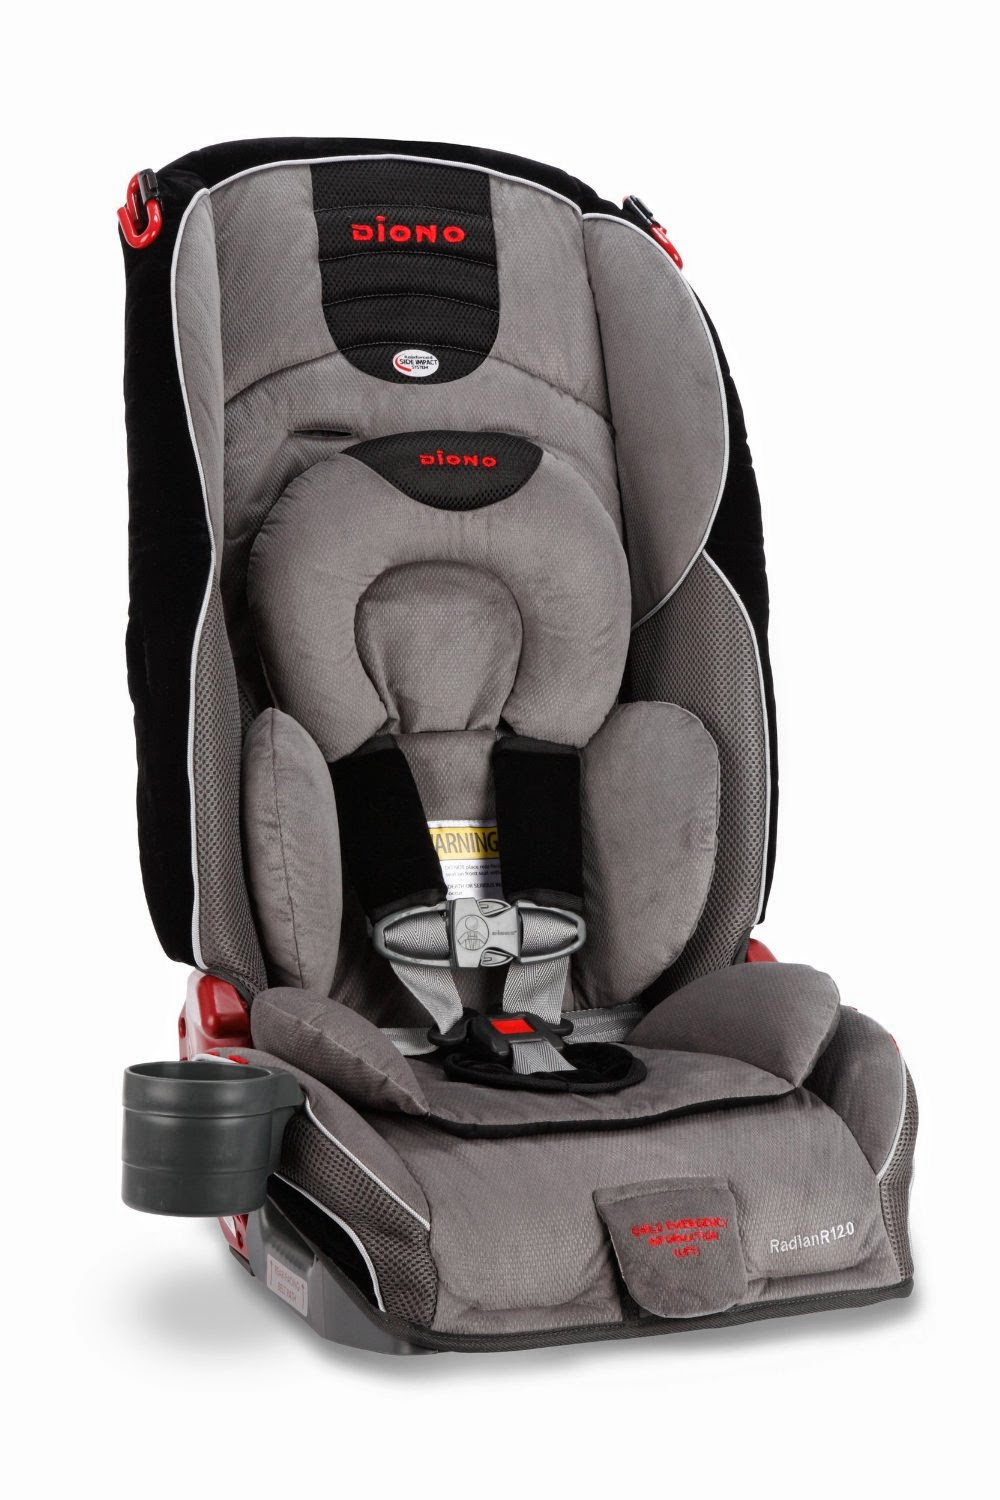 how to clean cloth car seats naturally